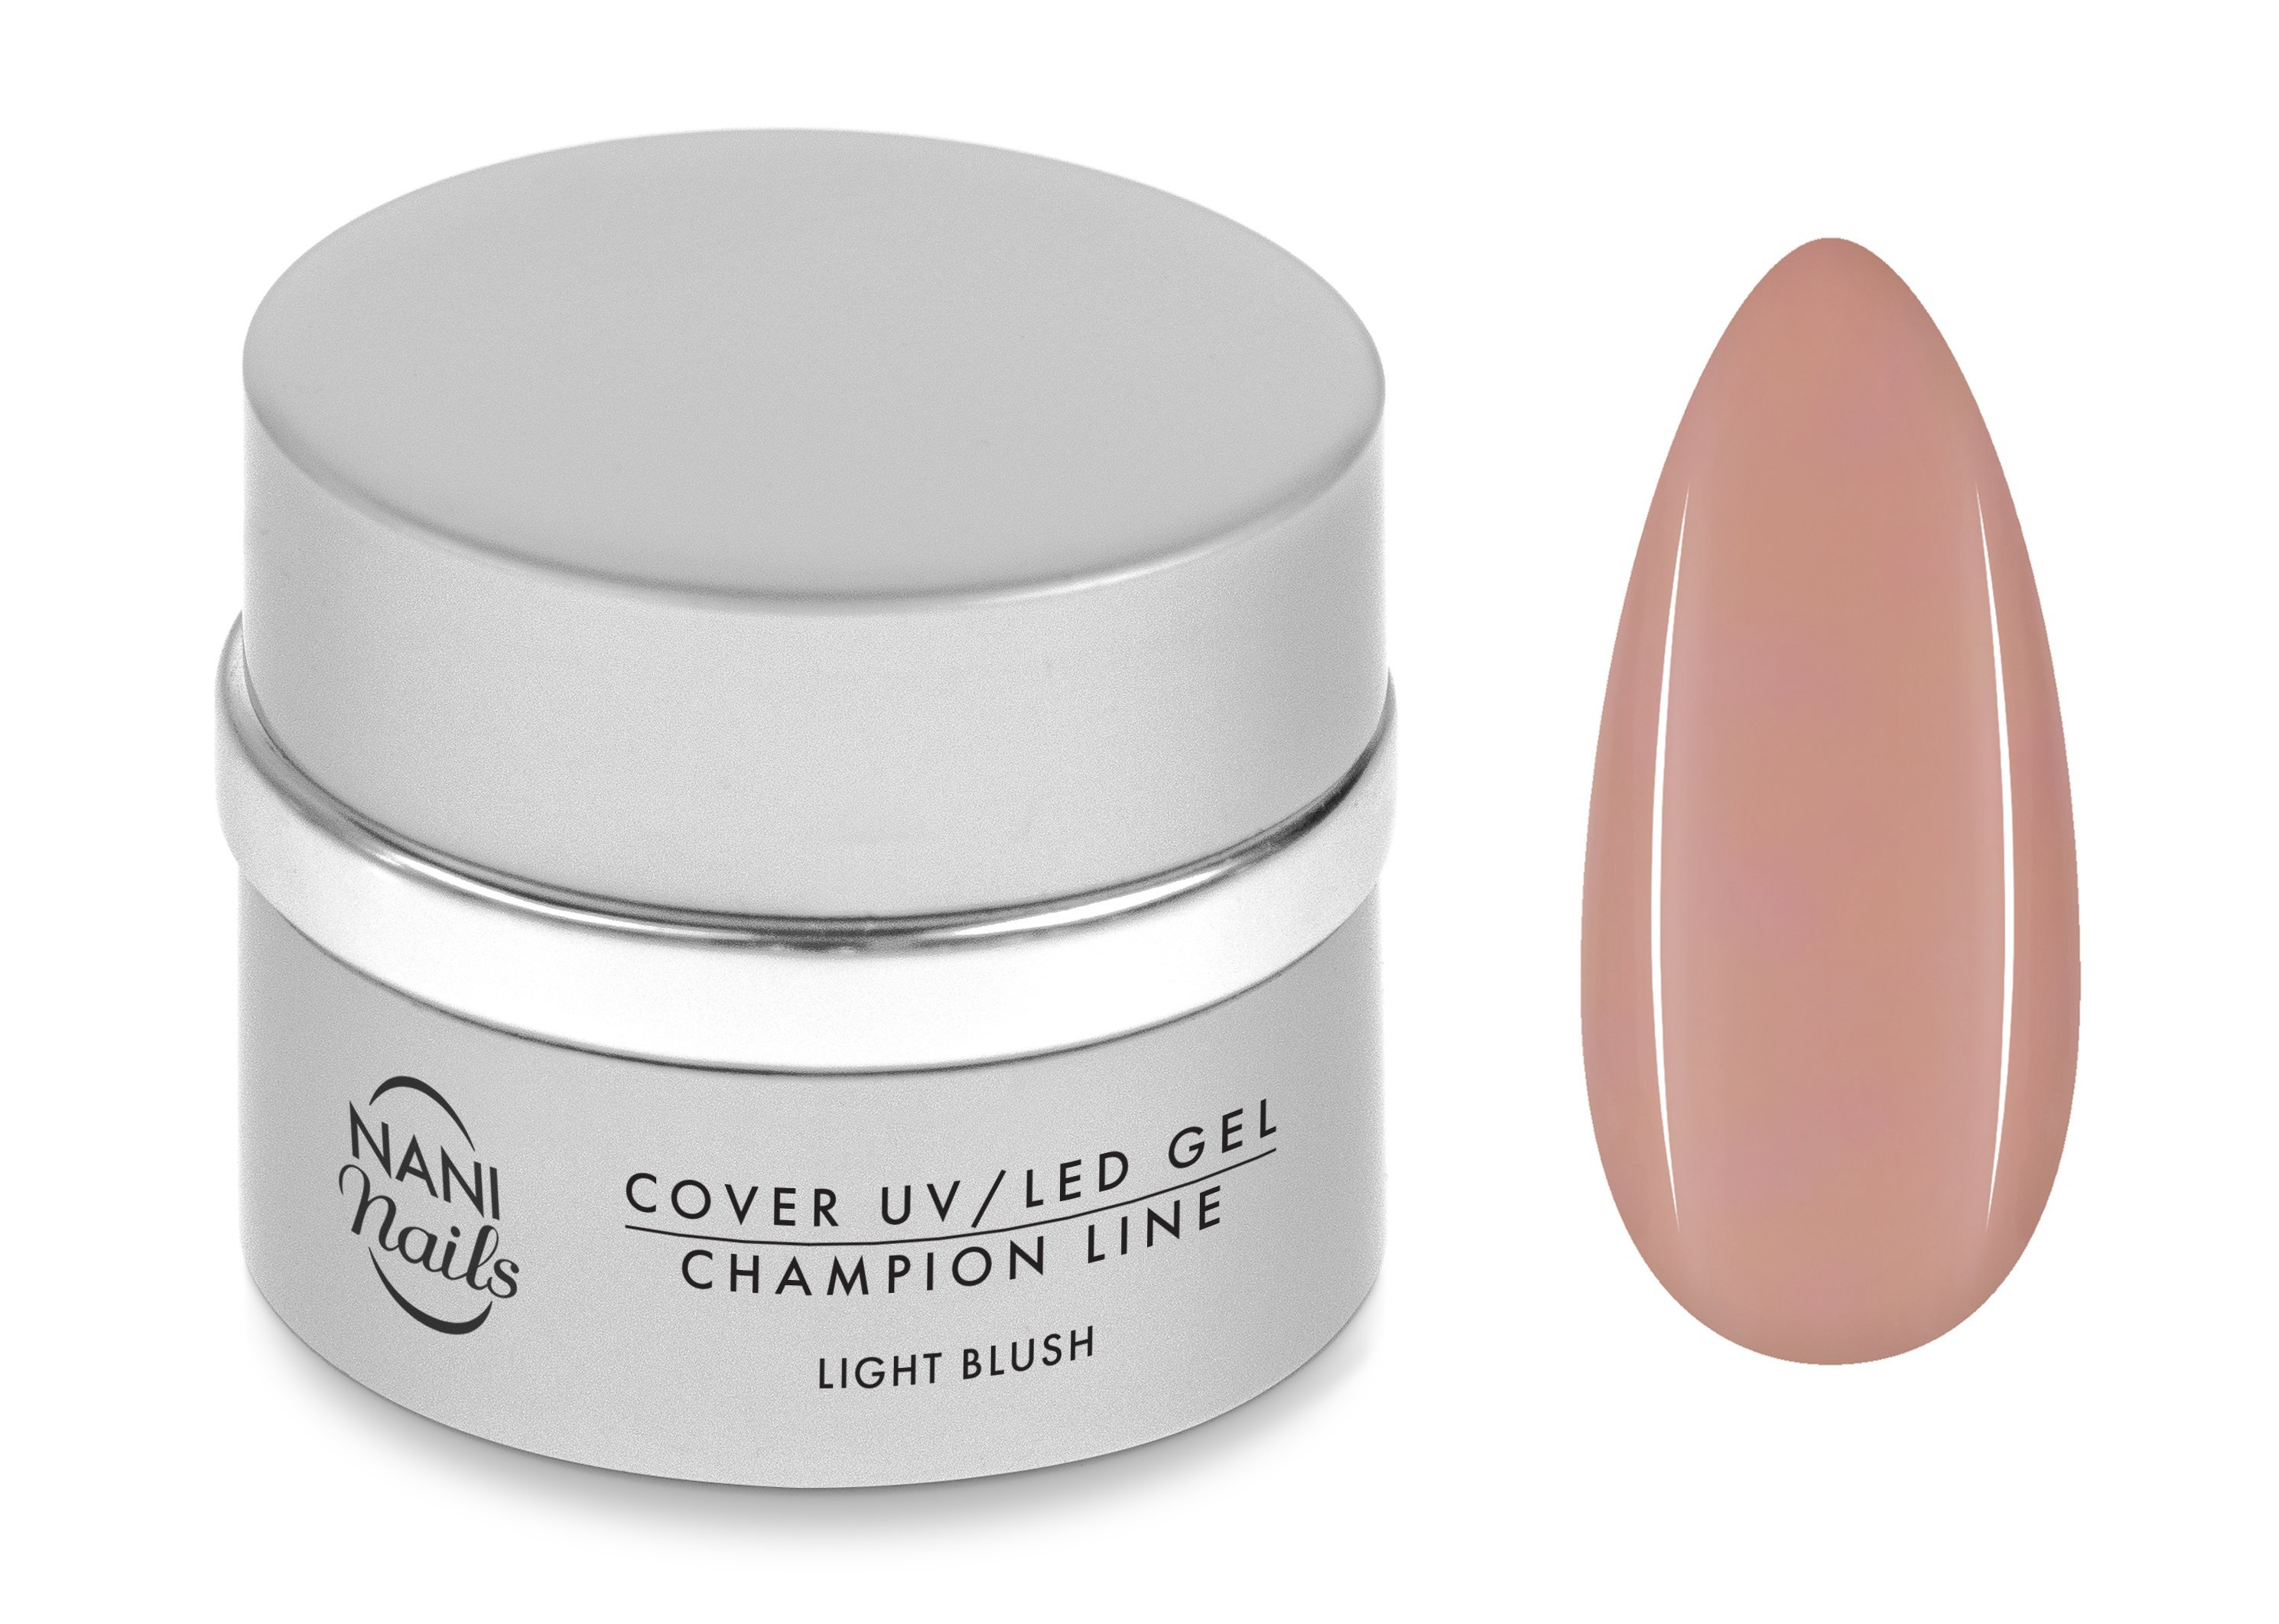 NANI UV/LED gél Champion Line 15 ml - Light Blush